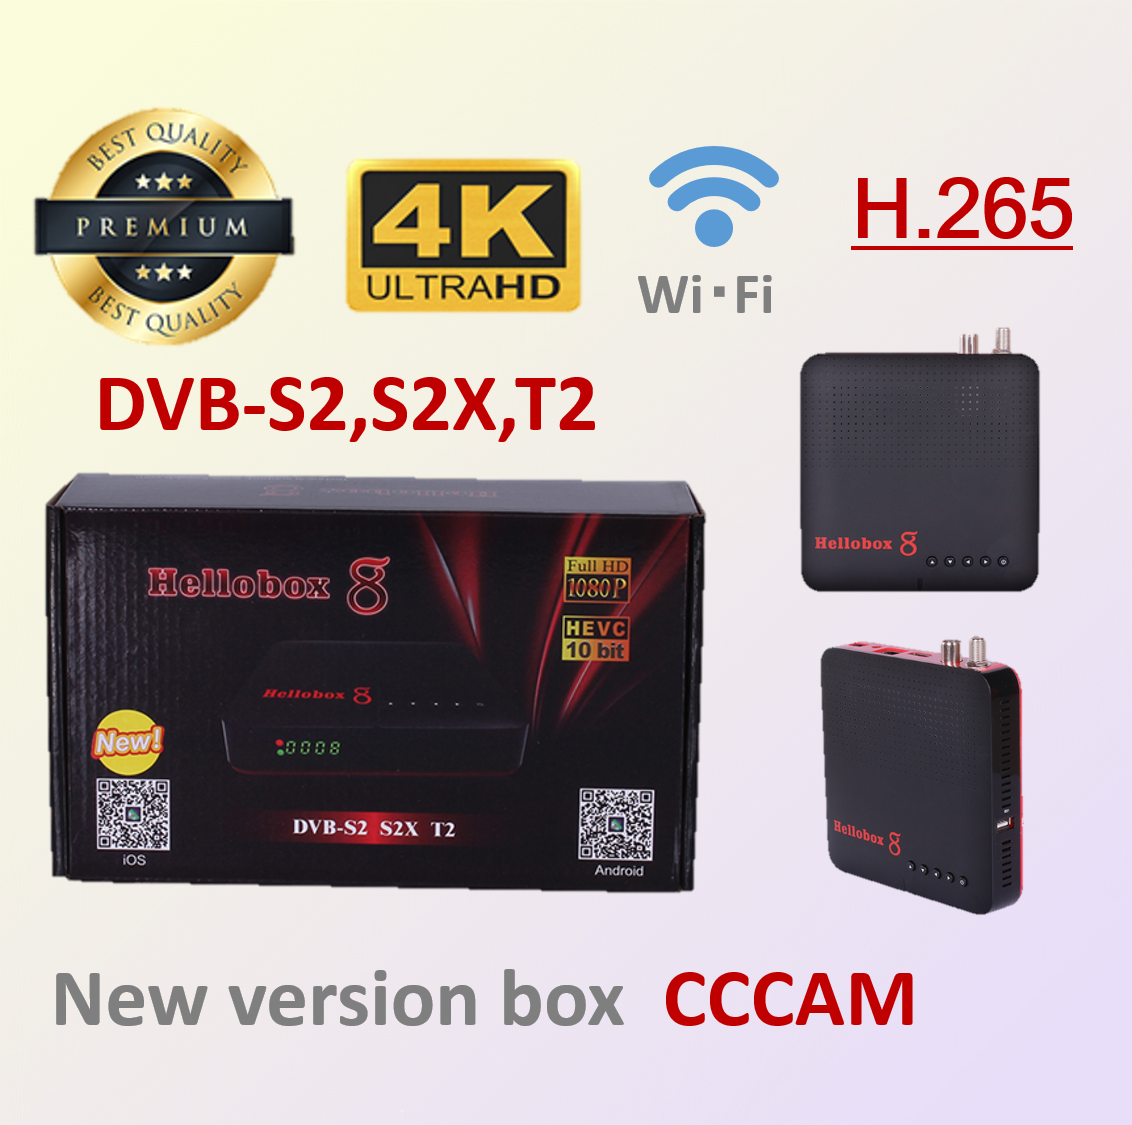 Hellobox 8 Satellite TV Receiver DVB-T2 /S2/S2X TV Tuner Support Play On Phone Mobile Satellite TV Receiver Support Spain Ccam